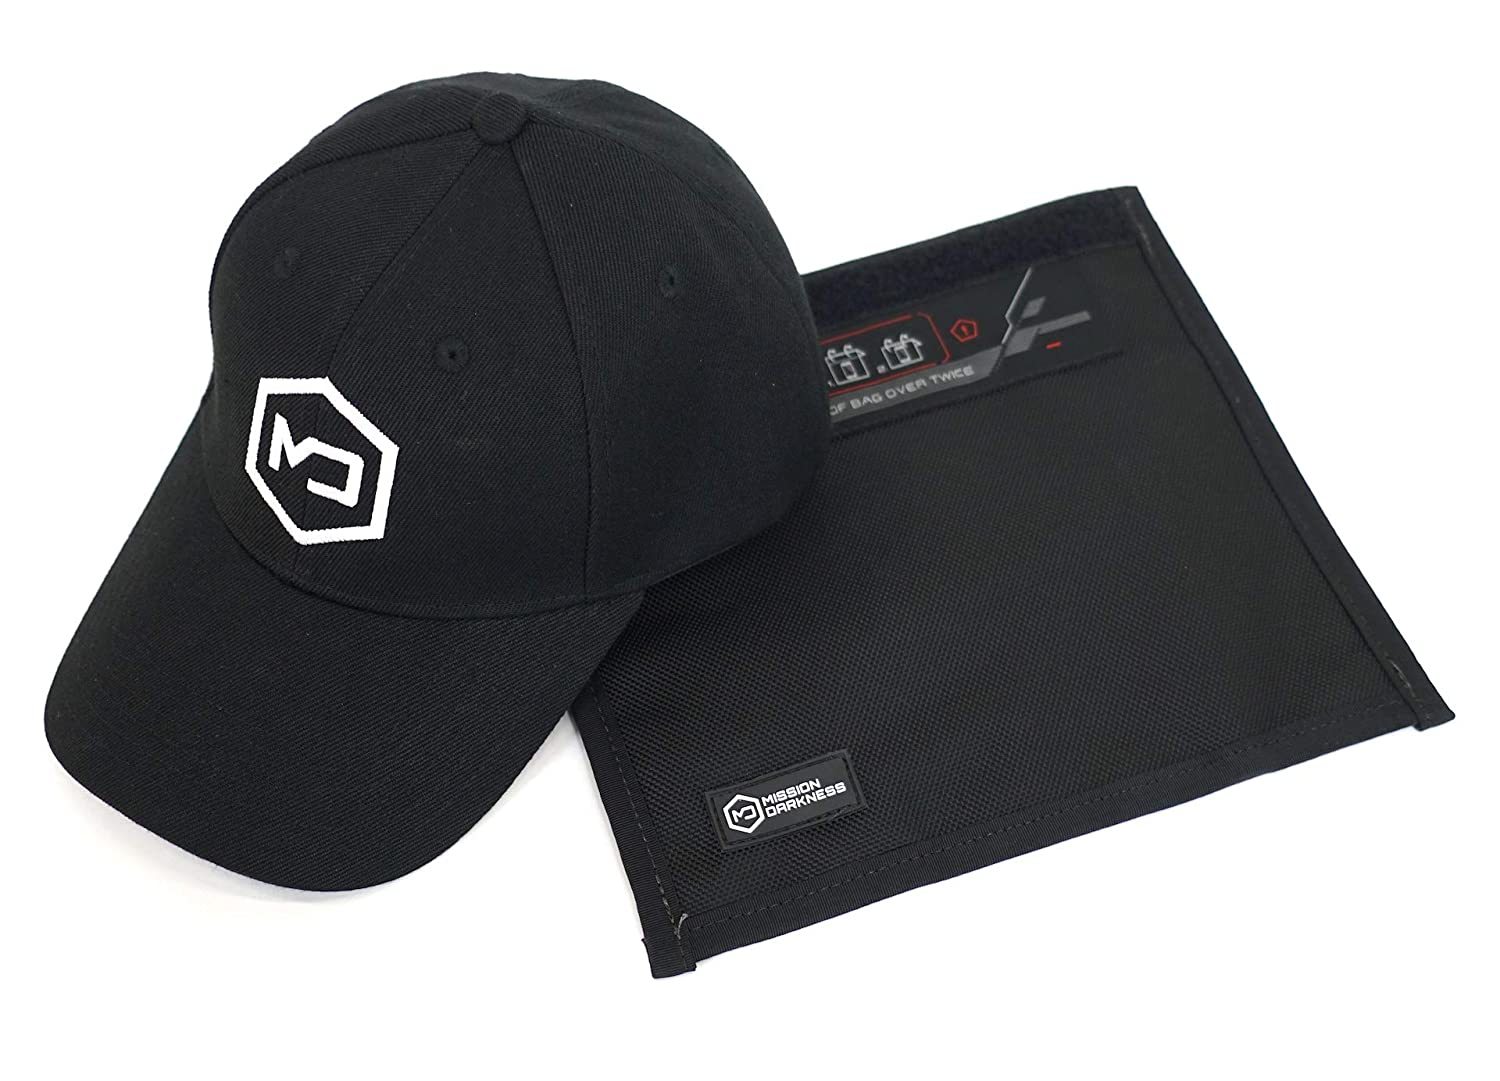 Mission Darkness Limited Edition Faraday Hat Bundle - Includes 1 EMF Blackout Hat and 1 Phone Shield Faraday Bag - Unique RF Shielding Gift Package